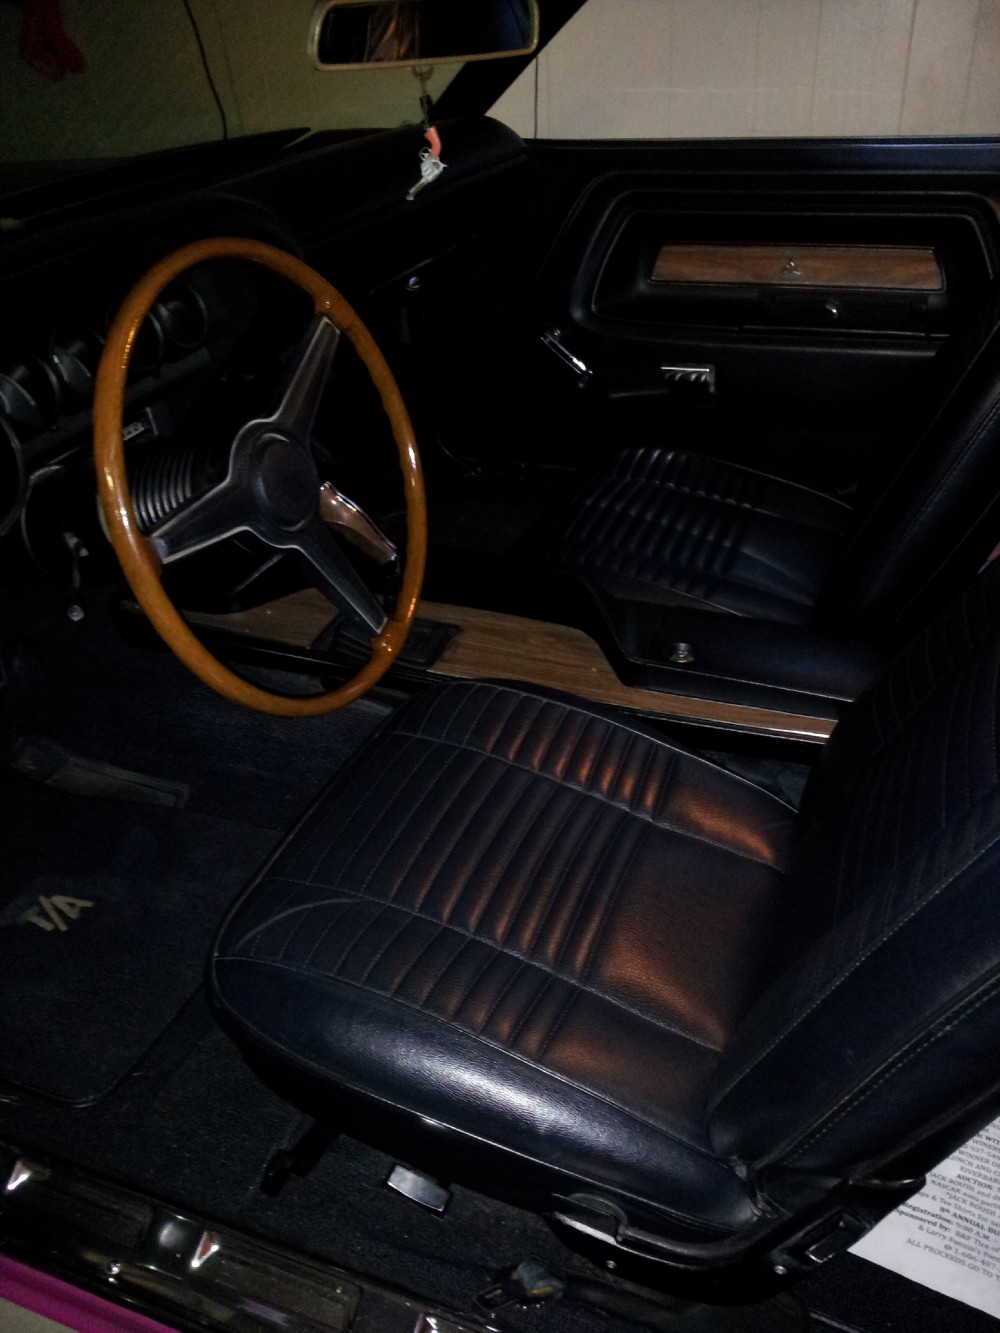 Used 1970 Dodge Challenger T/A RESTORED PINK PANTHER 6 PACK MOPAR TRANS AM-NOT A CLONE | Mundelein, IL